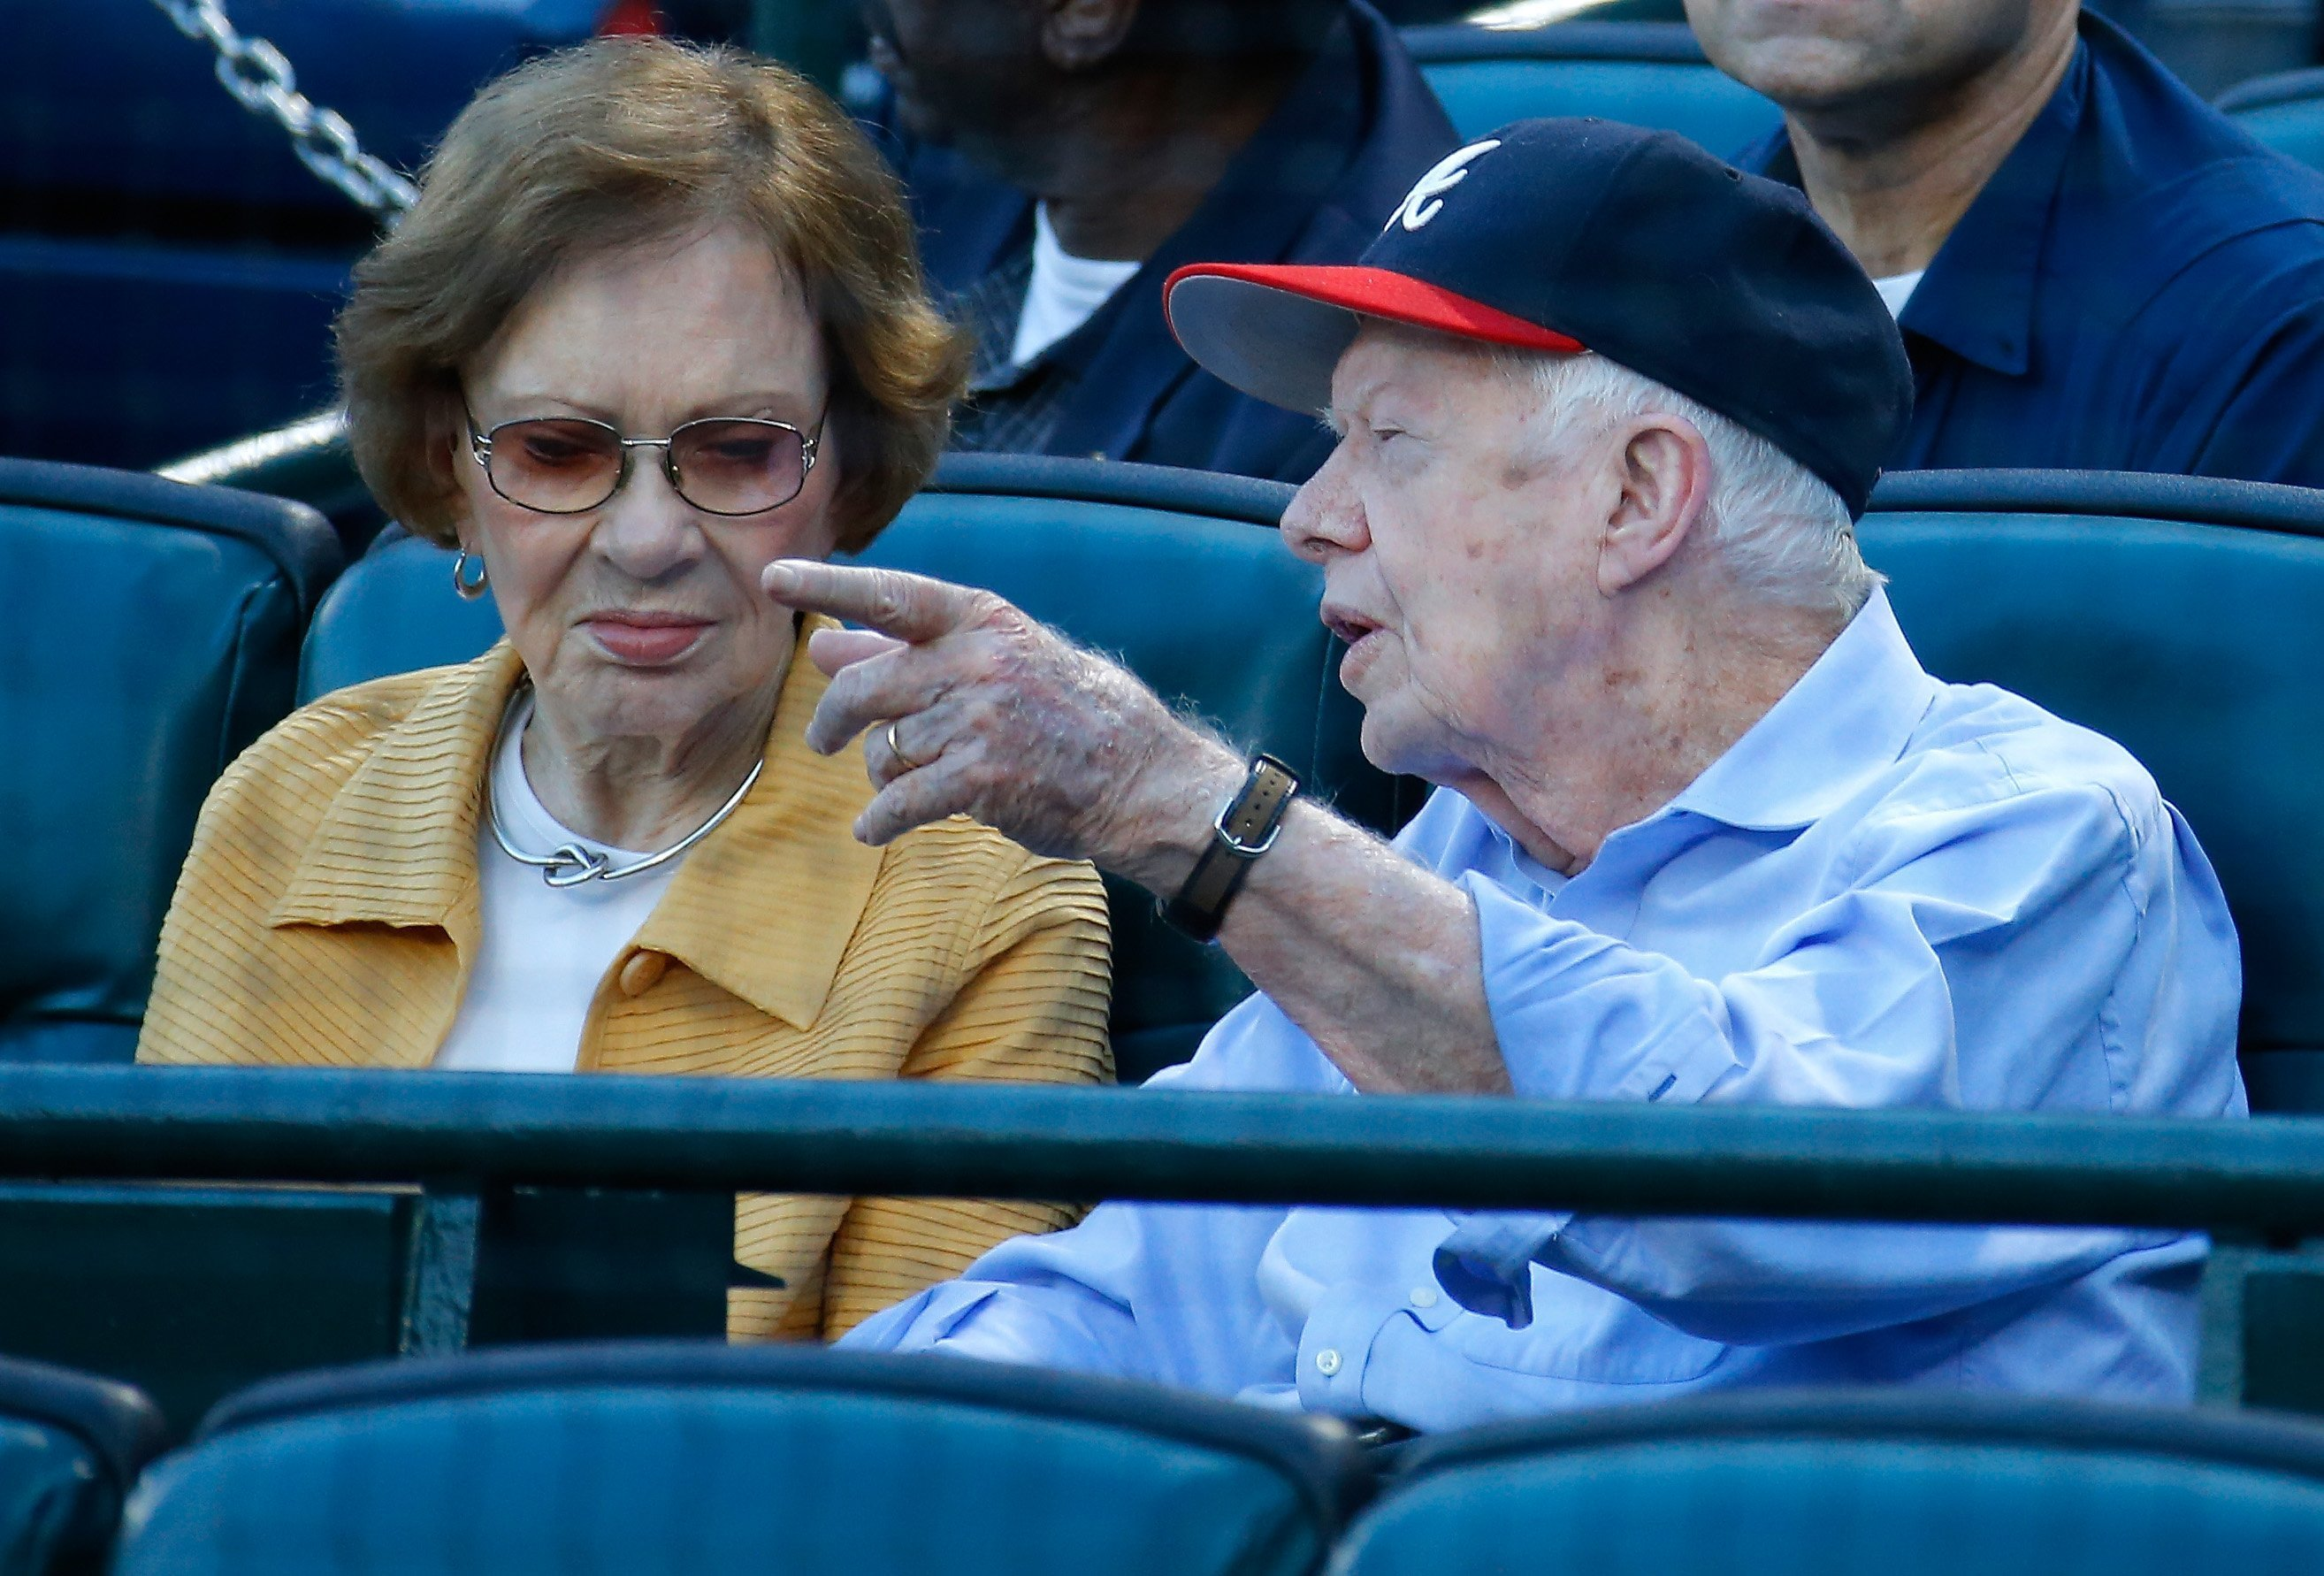 Jimmy Carter and wife Rosalynn at the game between the Atlanta Braves and the Toronto Blue Jays in Atlanta, Georgia | Photo: Getty Images